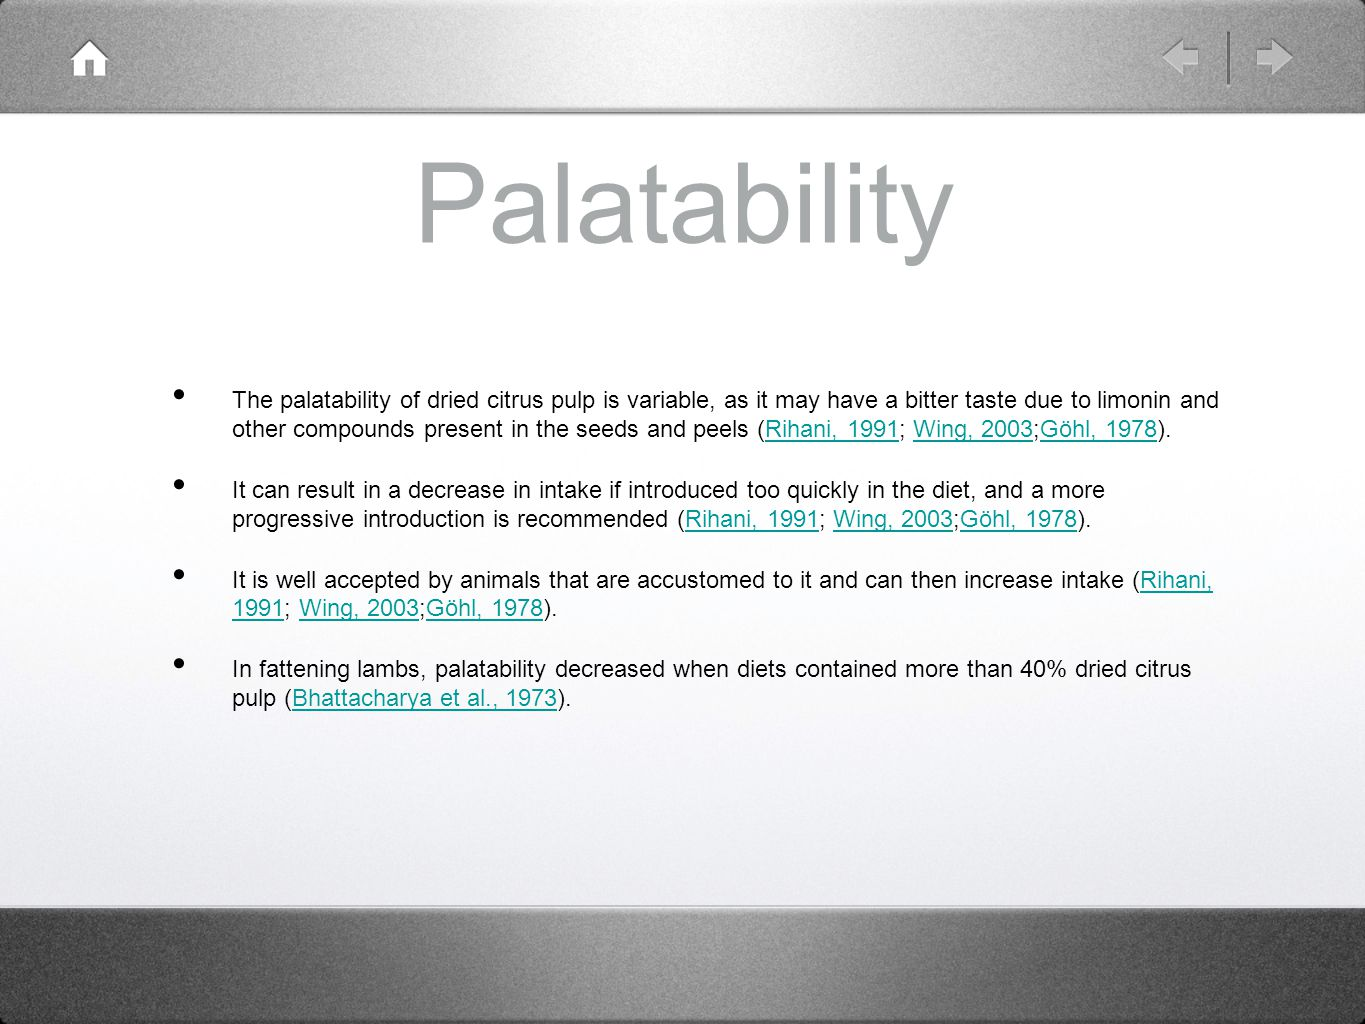 Palatability The palatability of dried citrus pulp is variable, as it may have a bitter taste due to limonin and other compounds present in the seeds